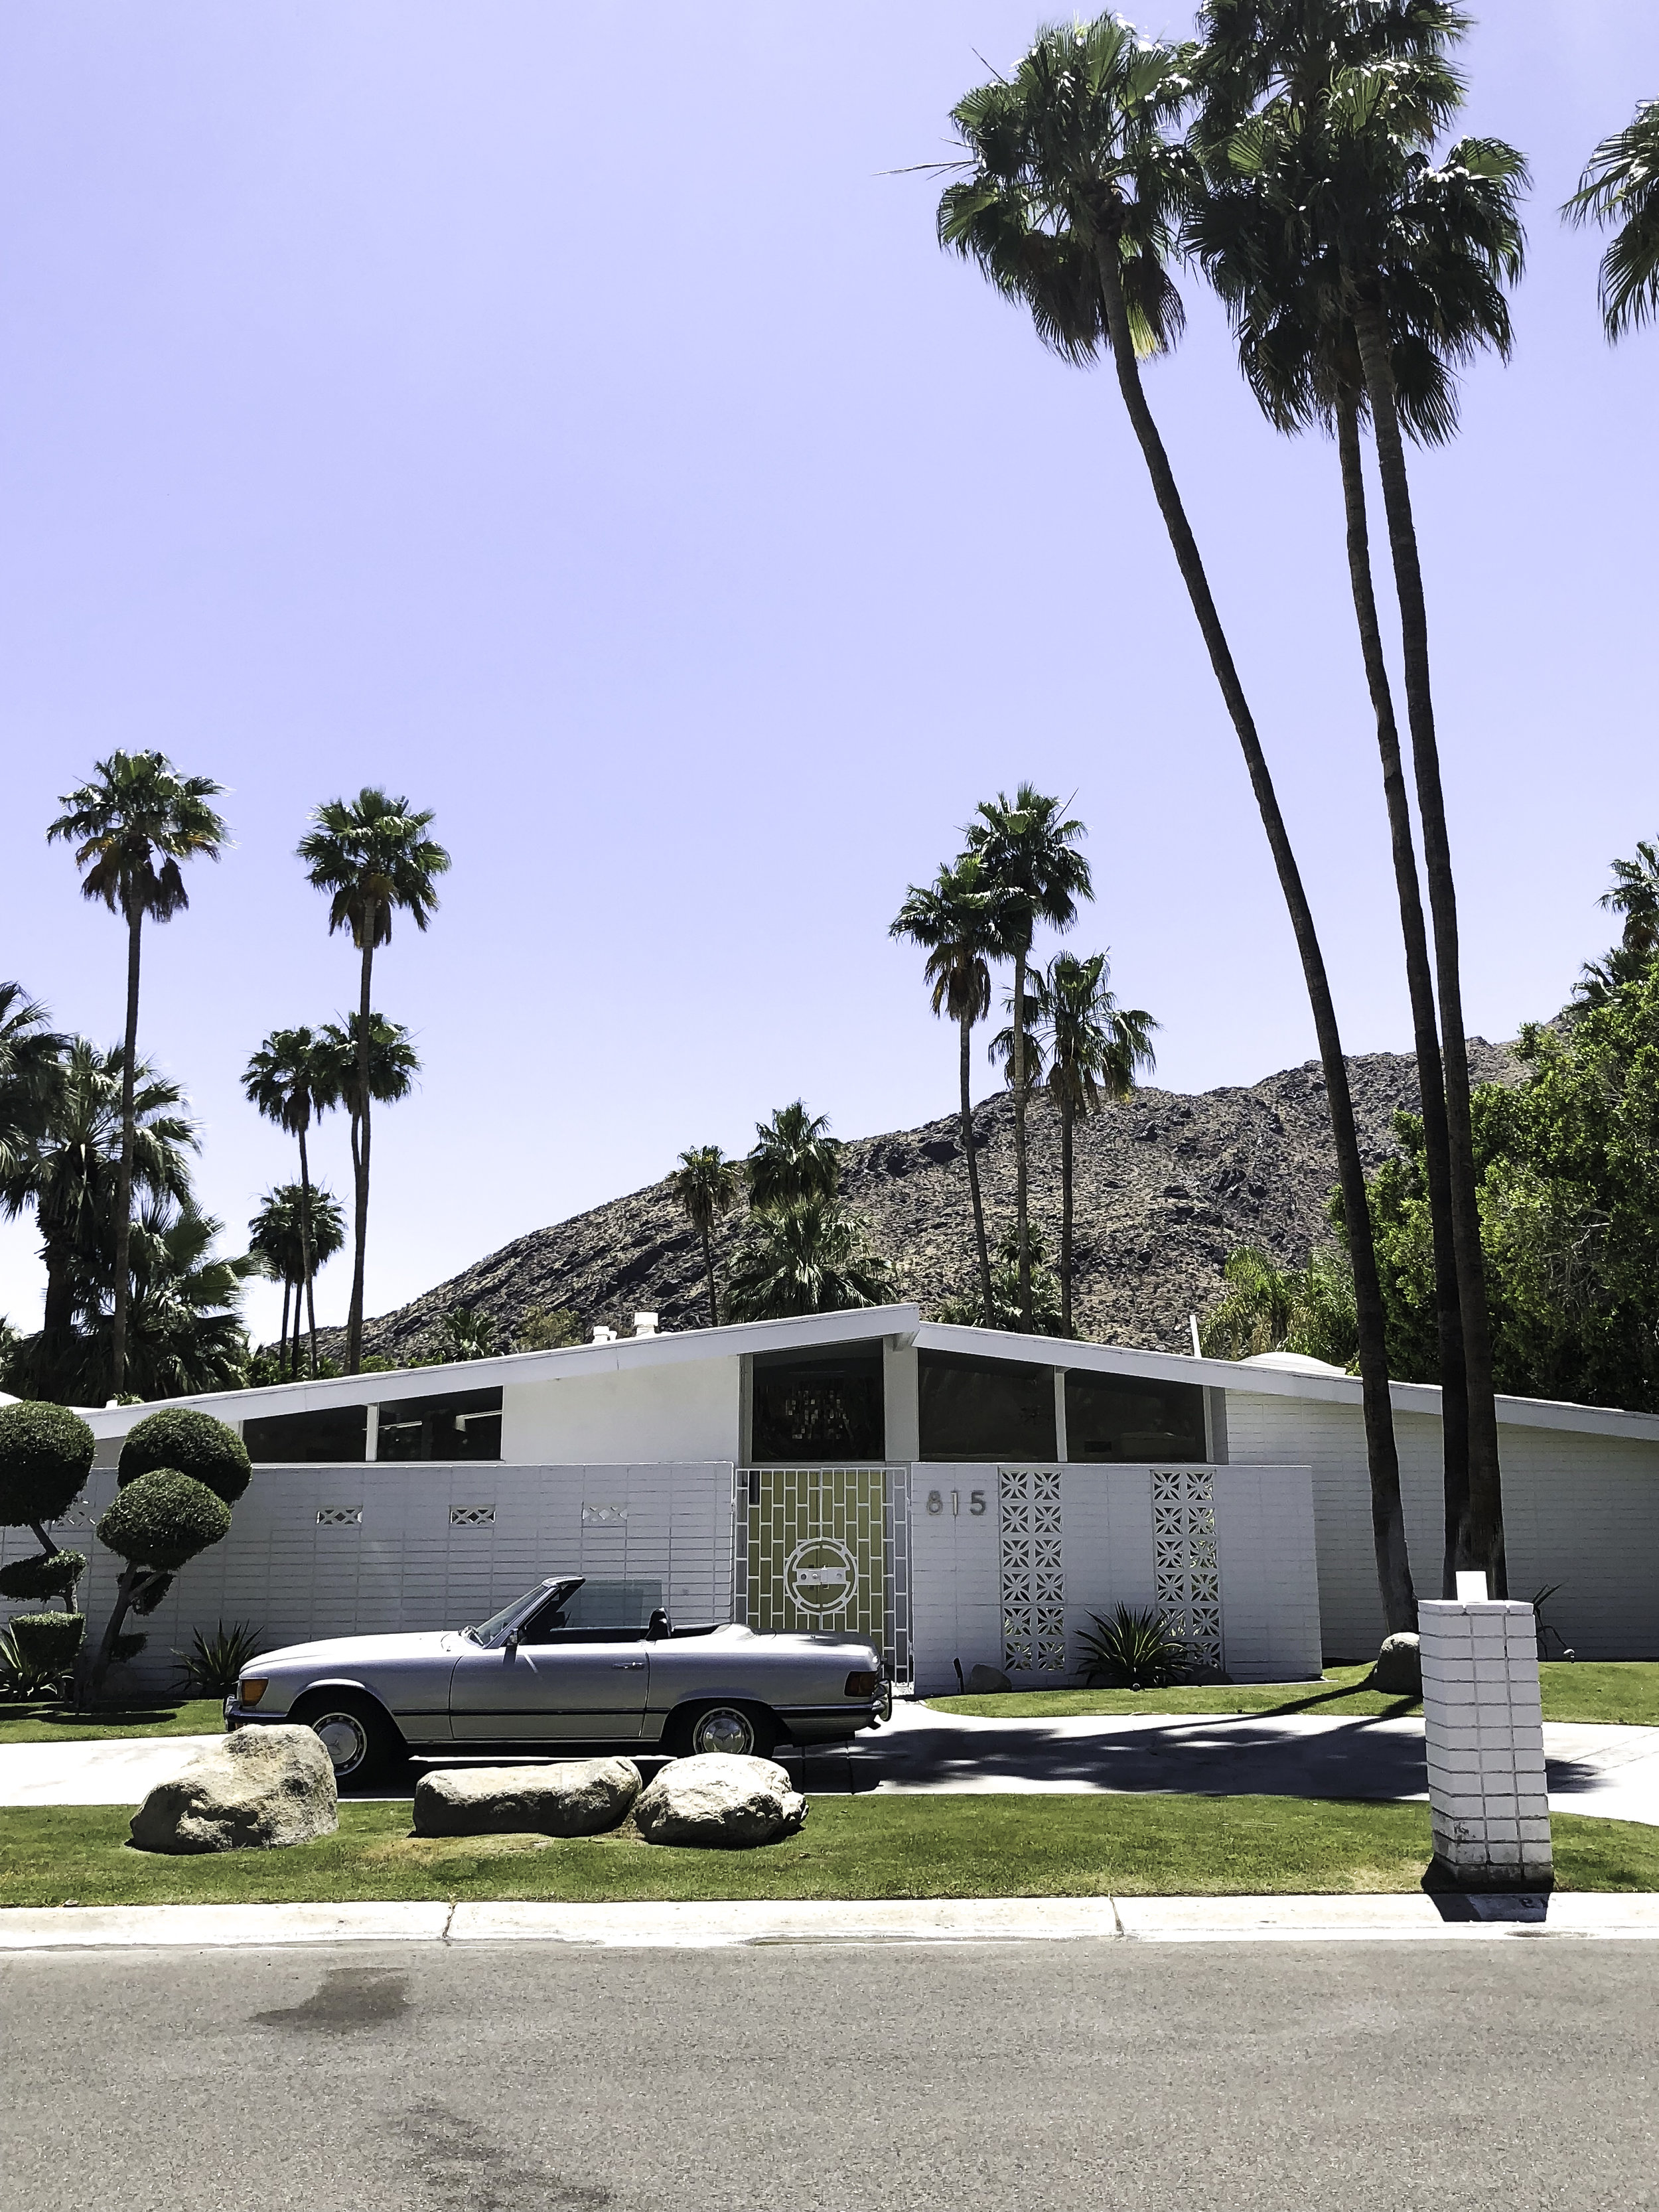 One of the ALEXANDER HOMES in Vista Las Palmas neighbourhood - Designed by architect William Krisel FAIA of Palmer & Krisel Developer/builder George and Robert Alexander of Alexander Construction Company